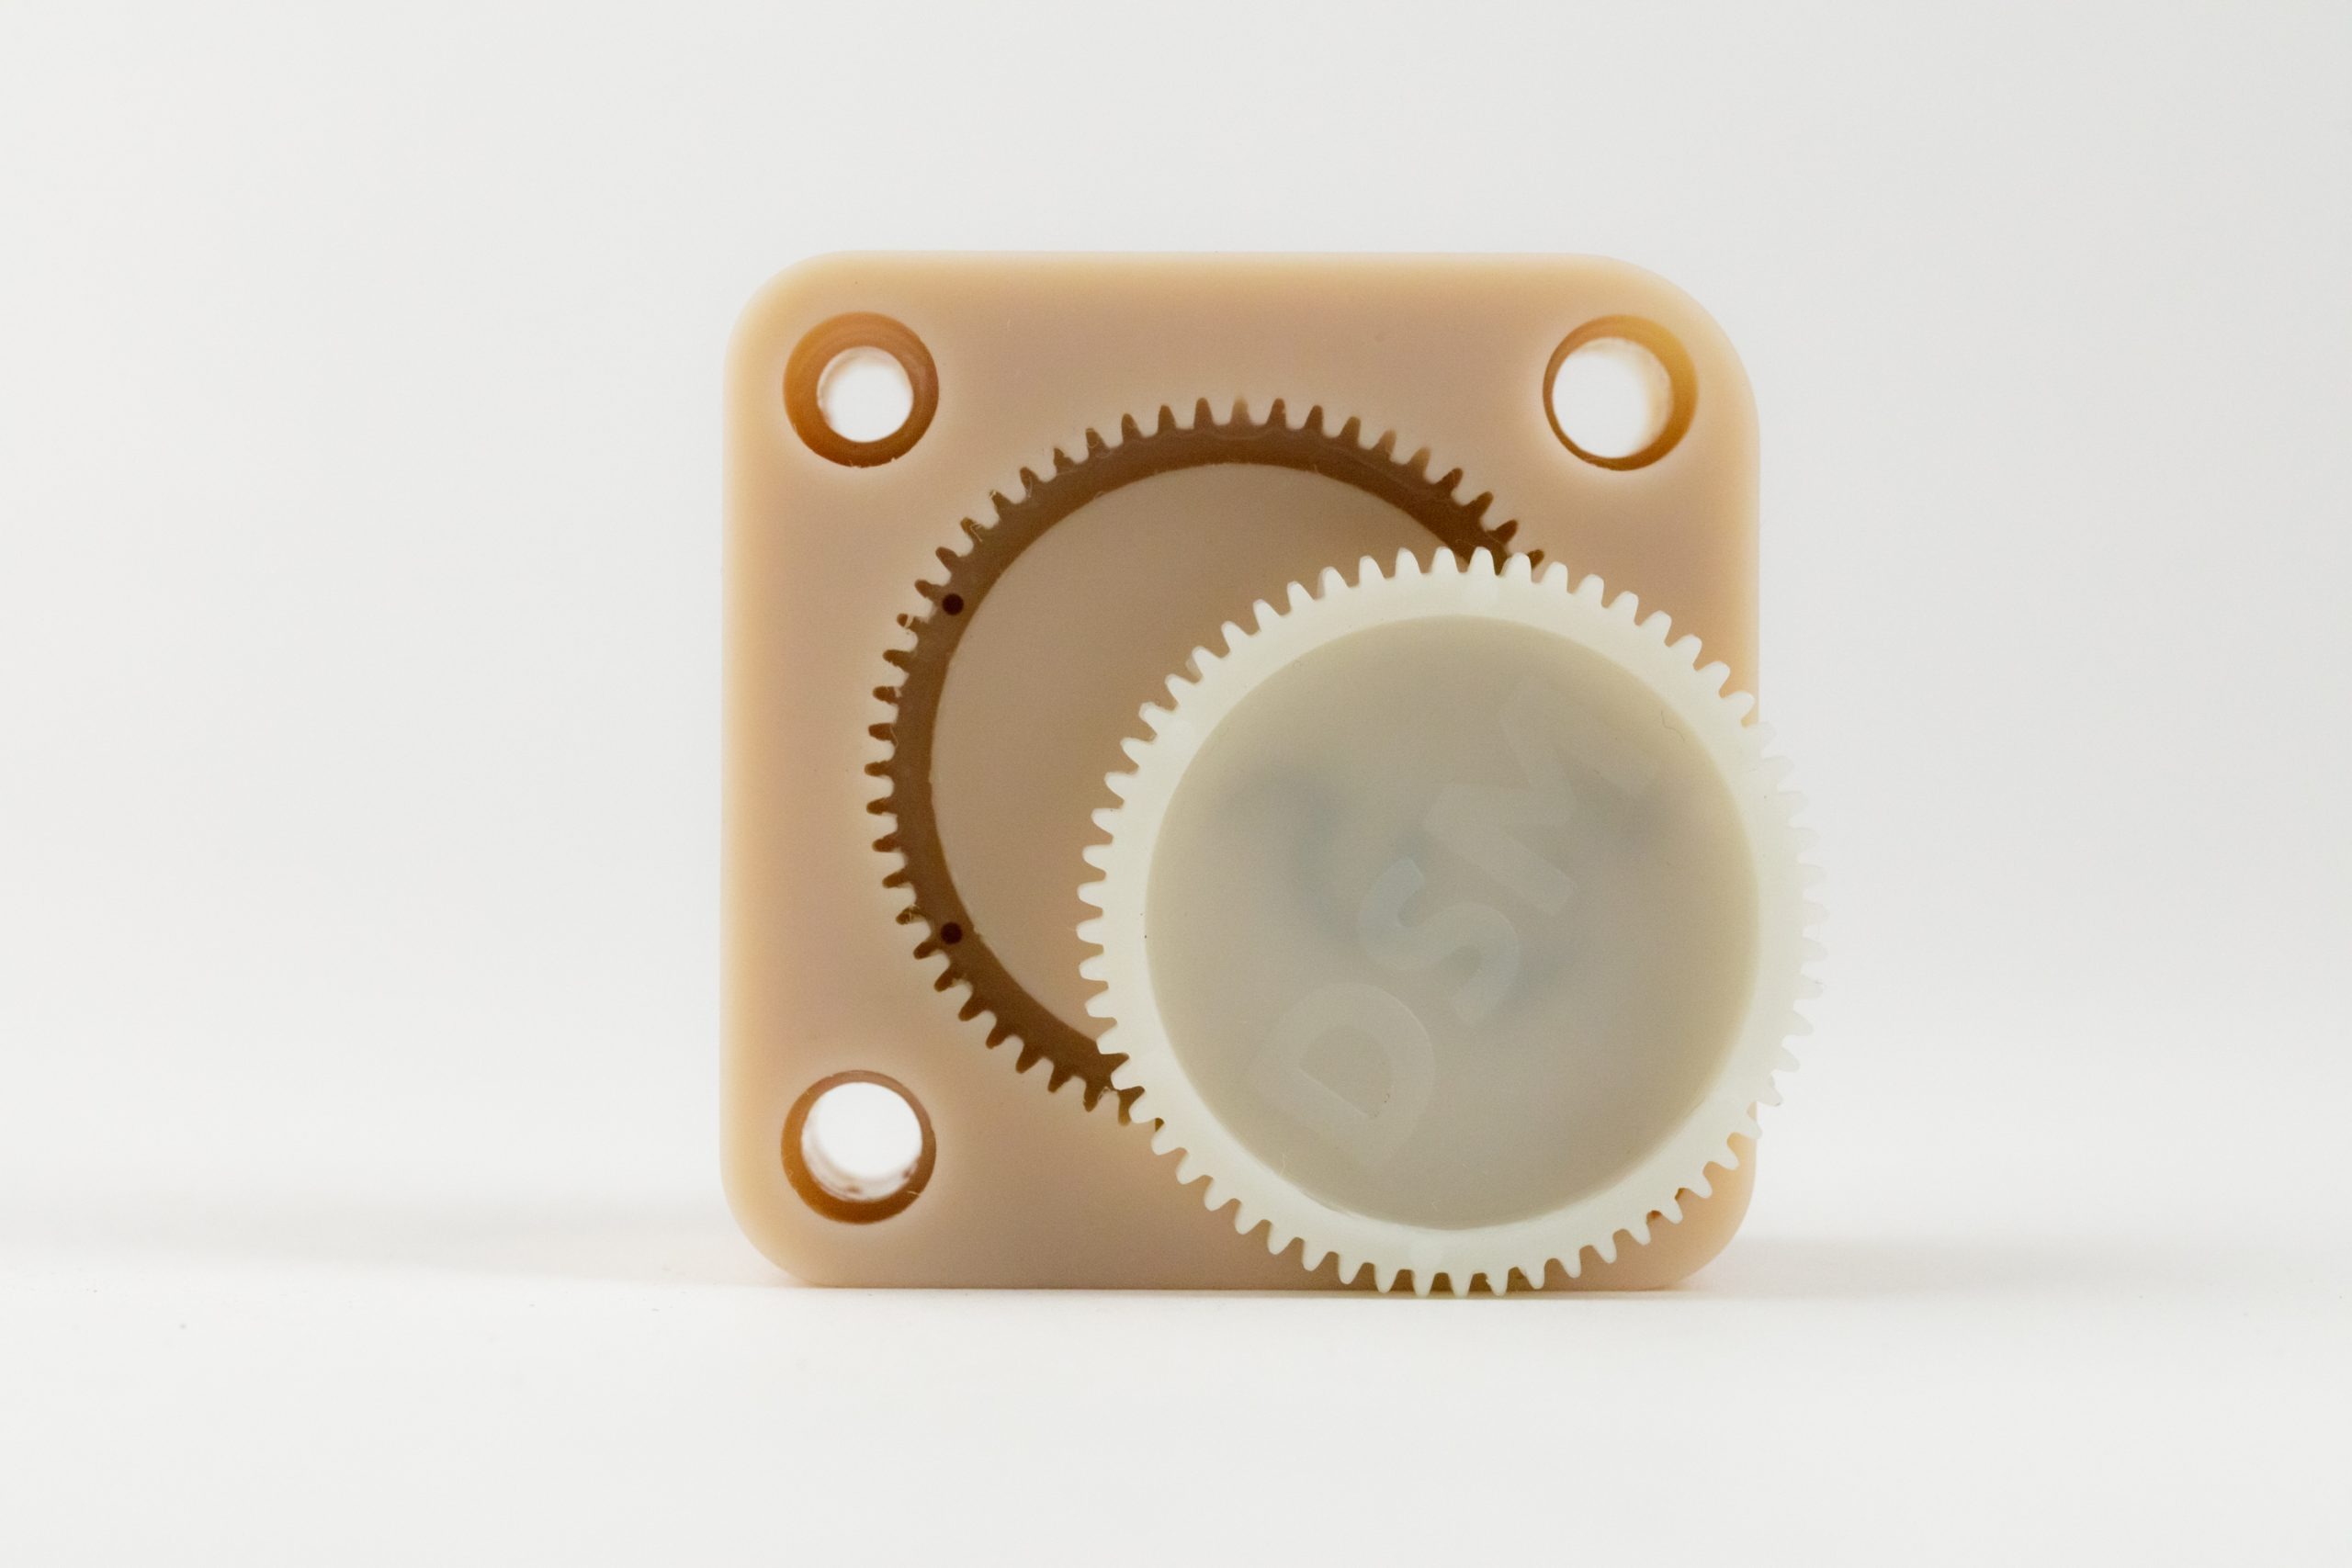 A tool used for injection molding glass-filled nylon gears 3D printed on EnvisionTEC's Perfactory P4K series printer using the e-PerFORM resin. Photo via EnvisionTEC.